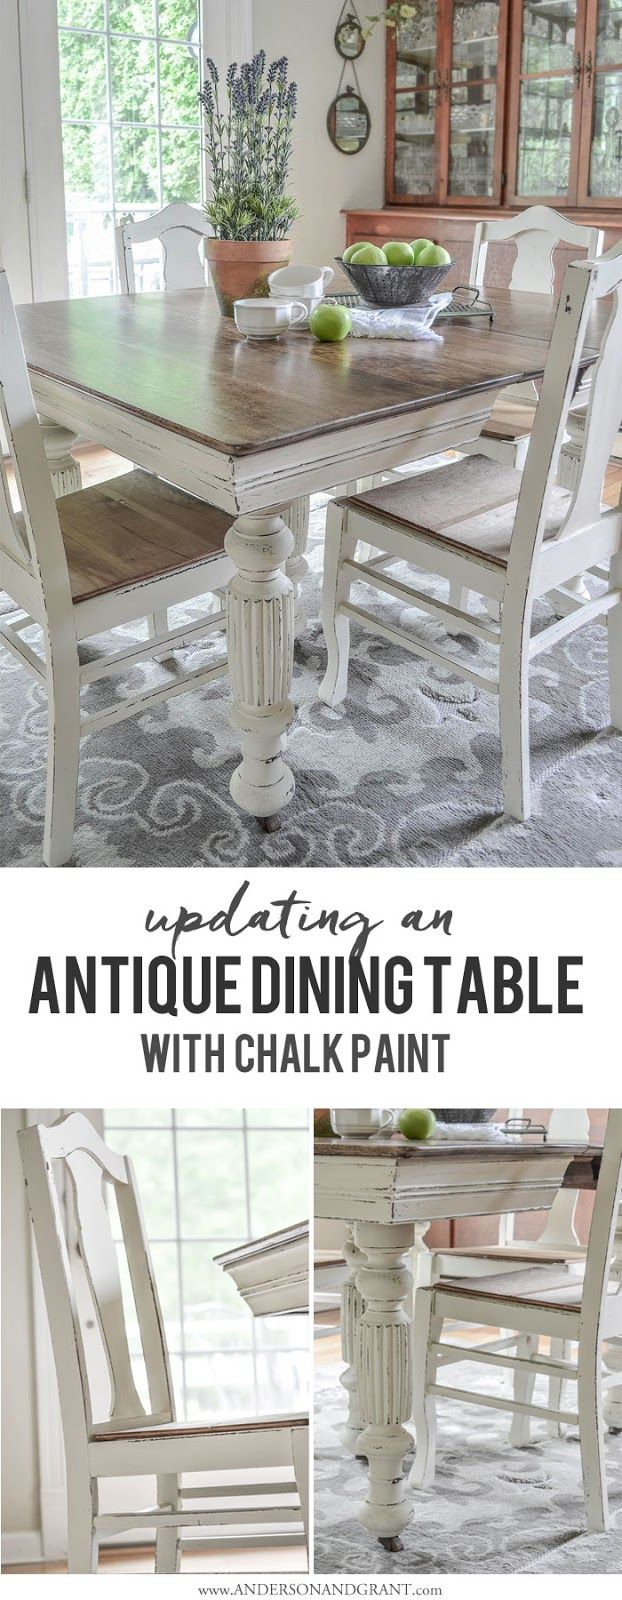 antique dining tables kitchen table and chairs Antique Dining Table Updated with Chalk Paint